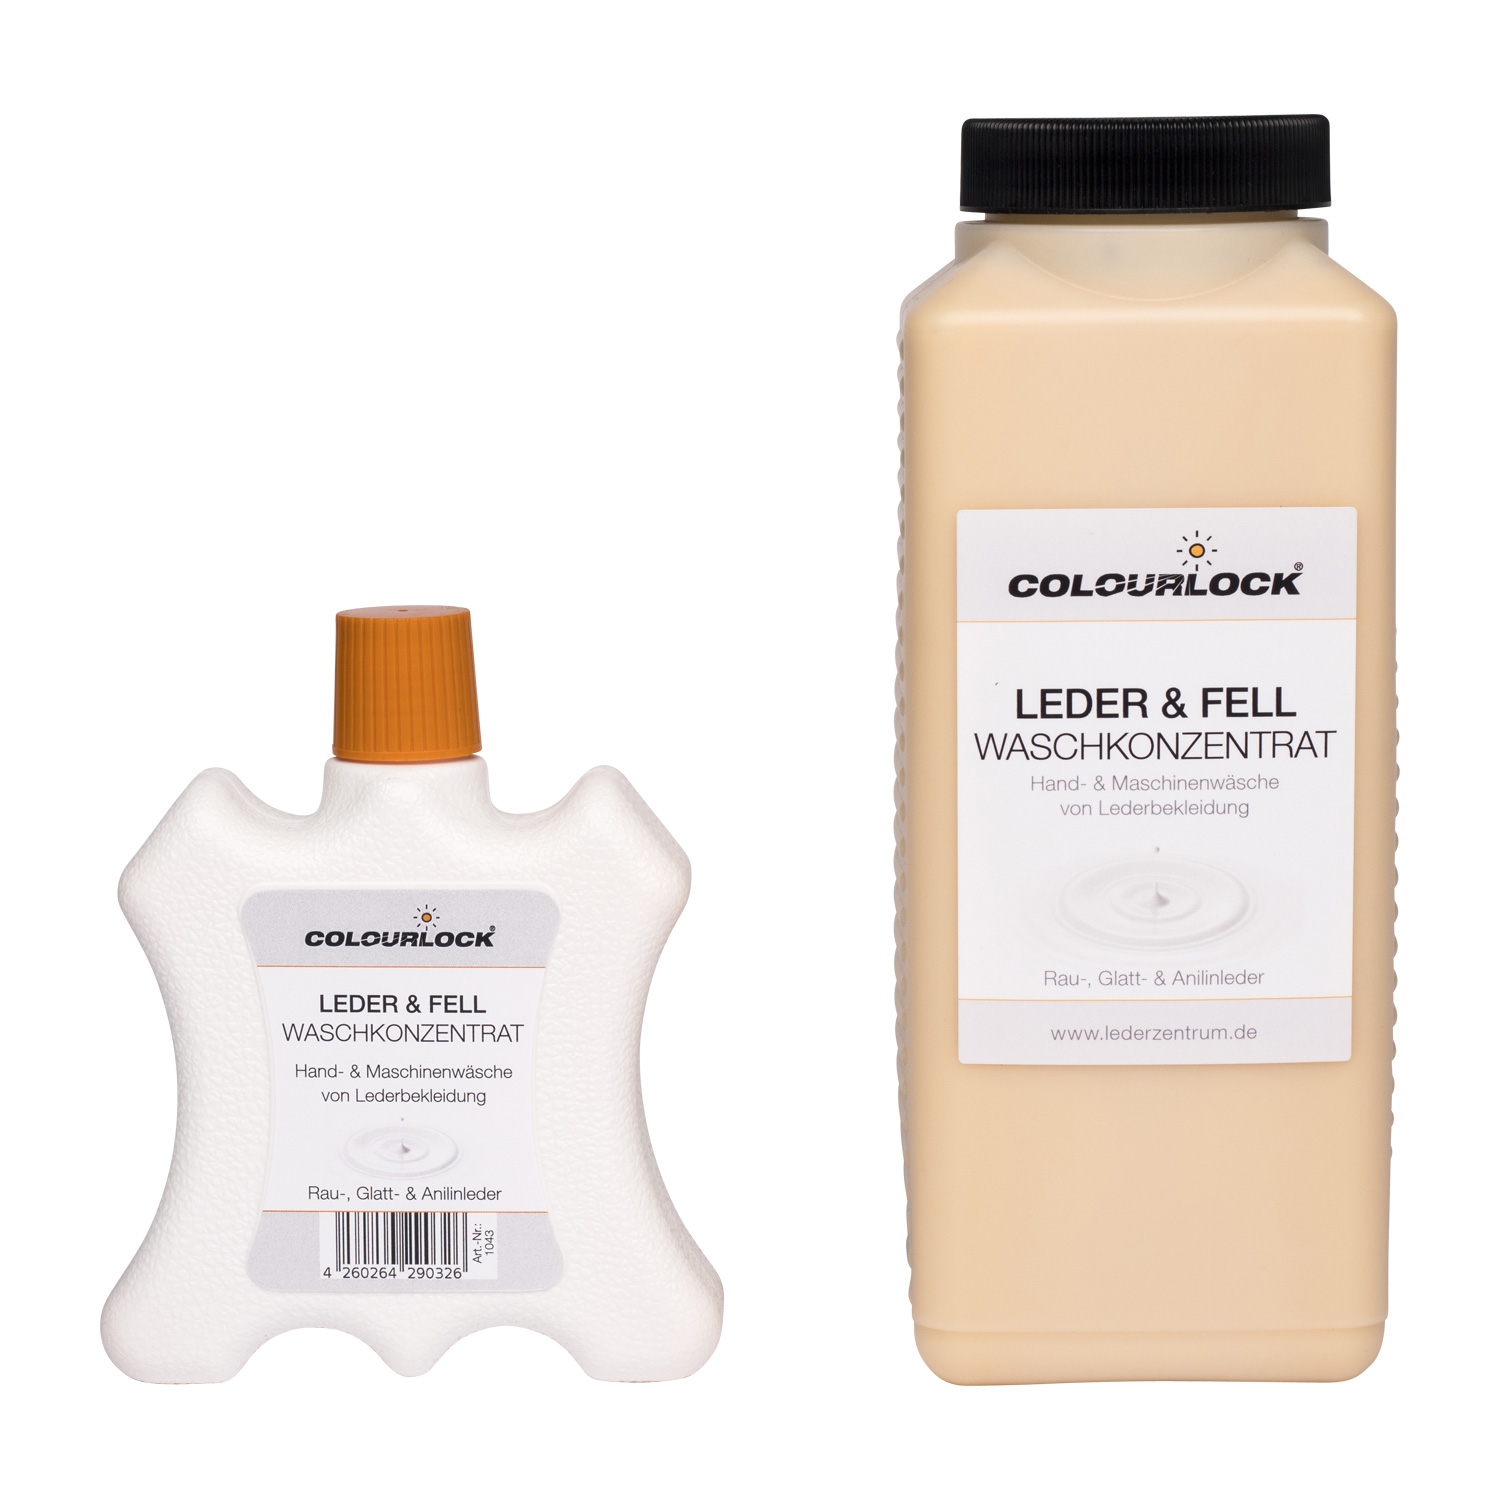 COLOURLOCK Lederwaschmittel, 250 ml